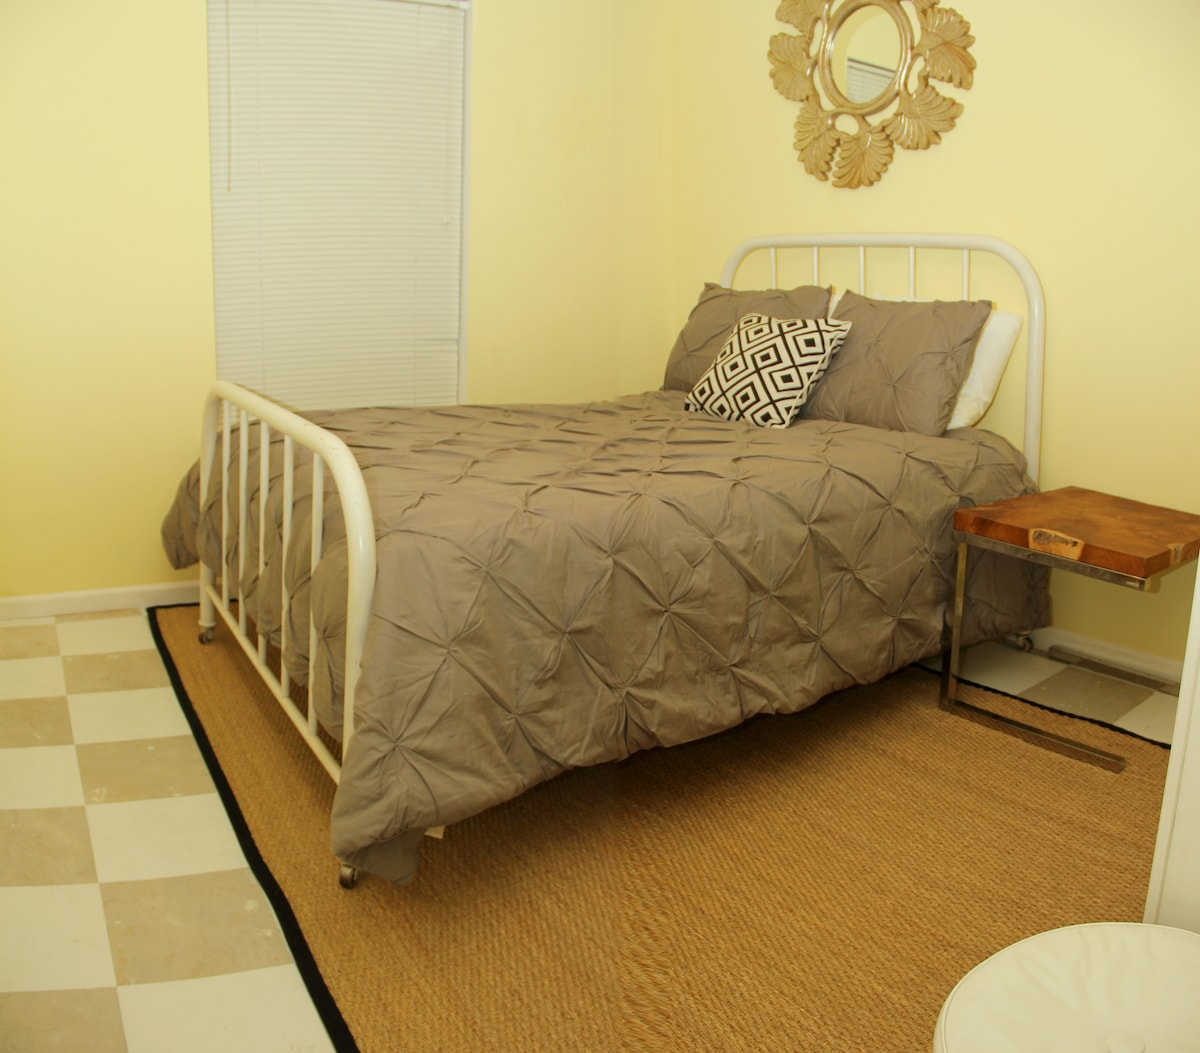 Guest Bedroom 2 - One full bed and full closet, also a large shelving unit to store your clothes.